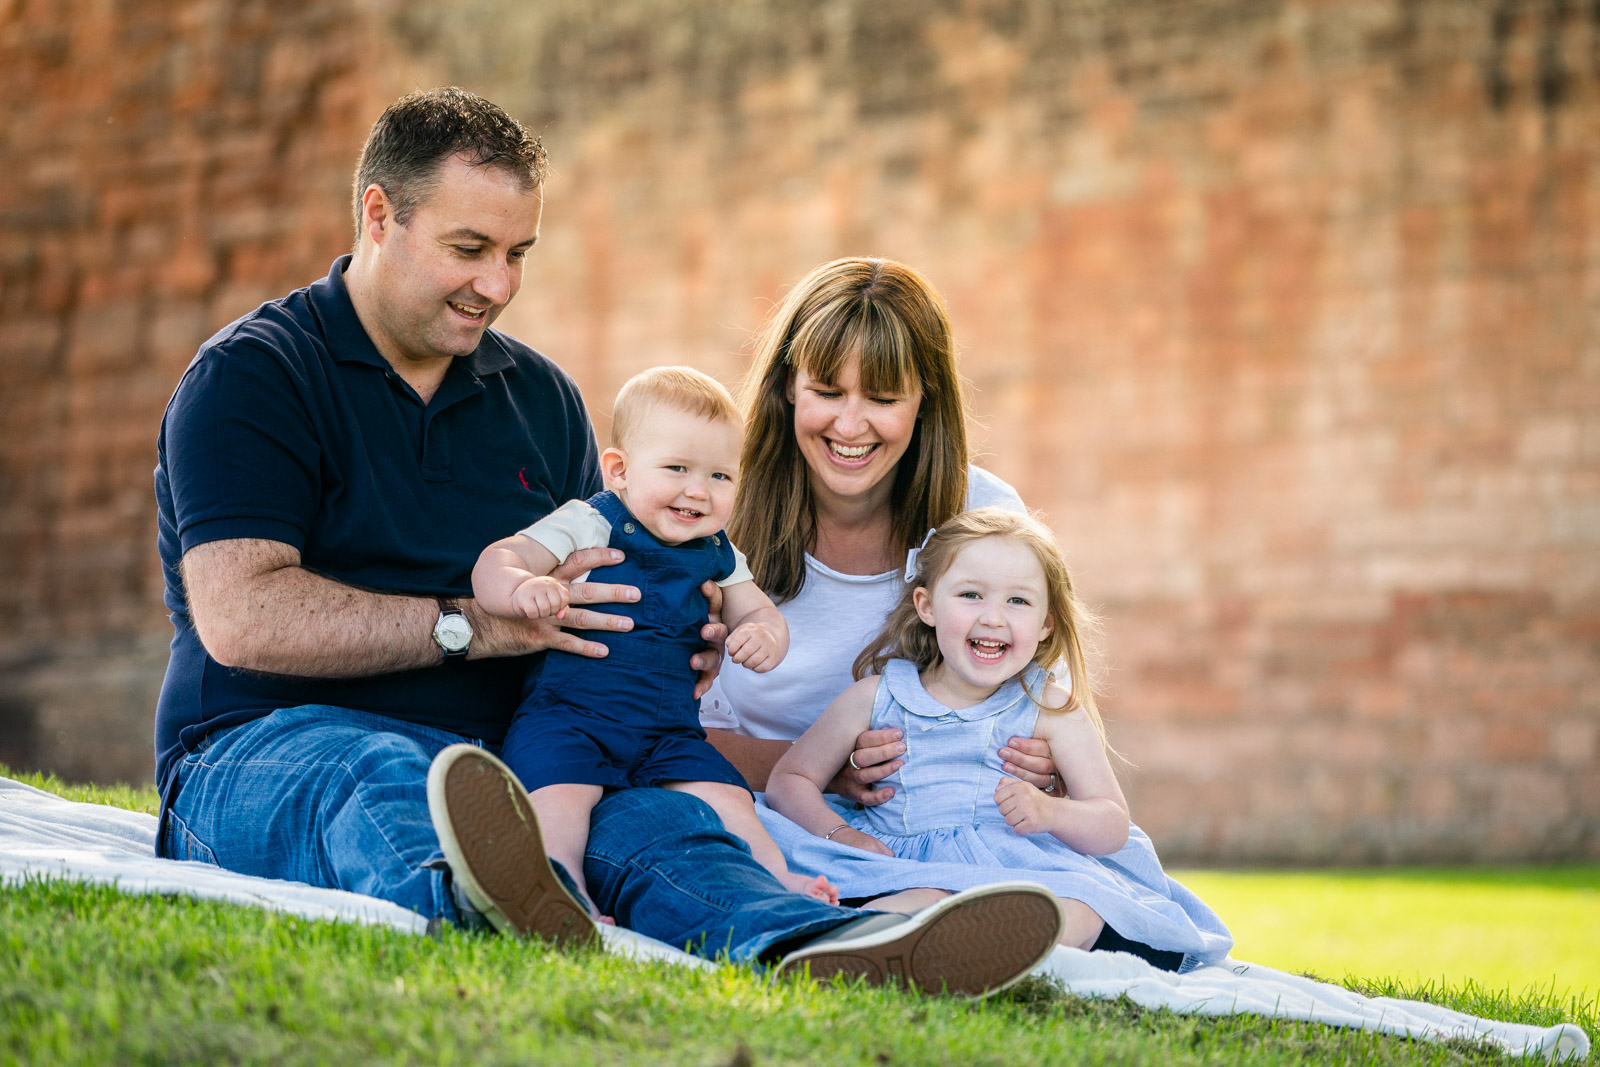 walker-family-session-bothwell-castle-glasgow-dearlyphotography (20 of 31).jpg